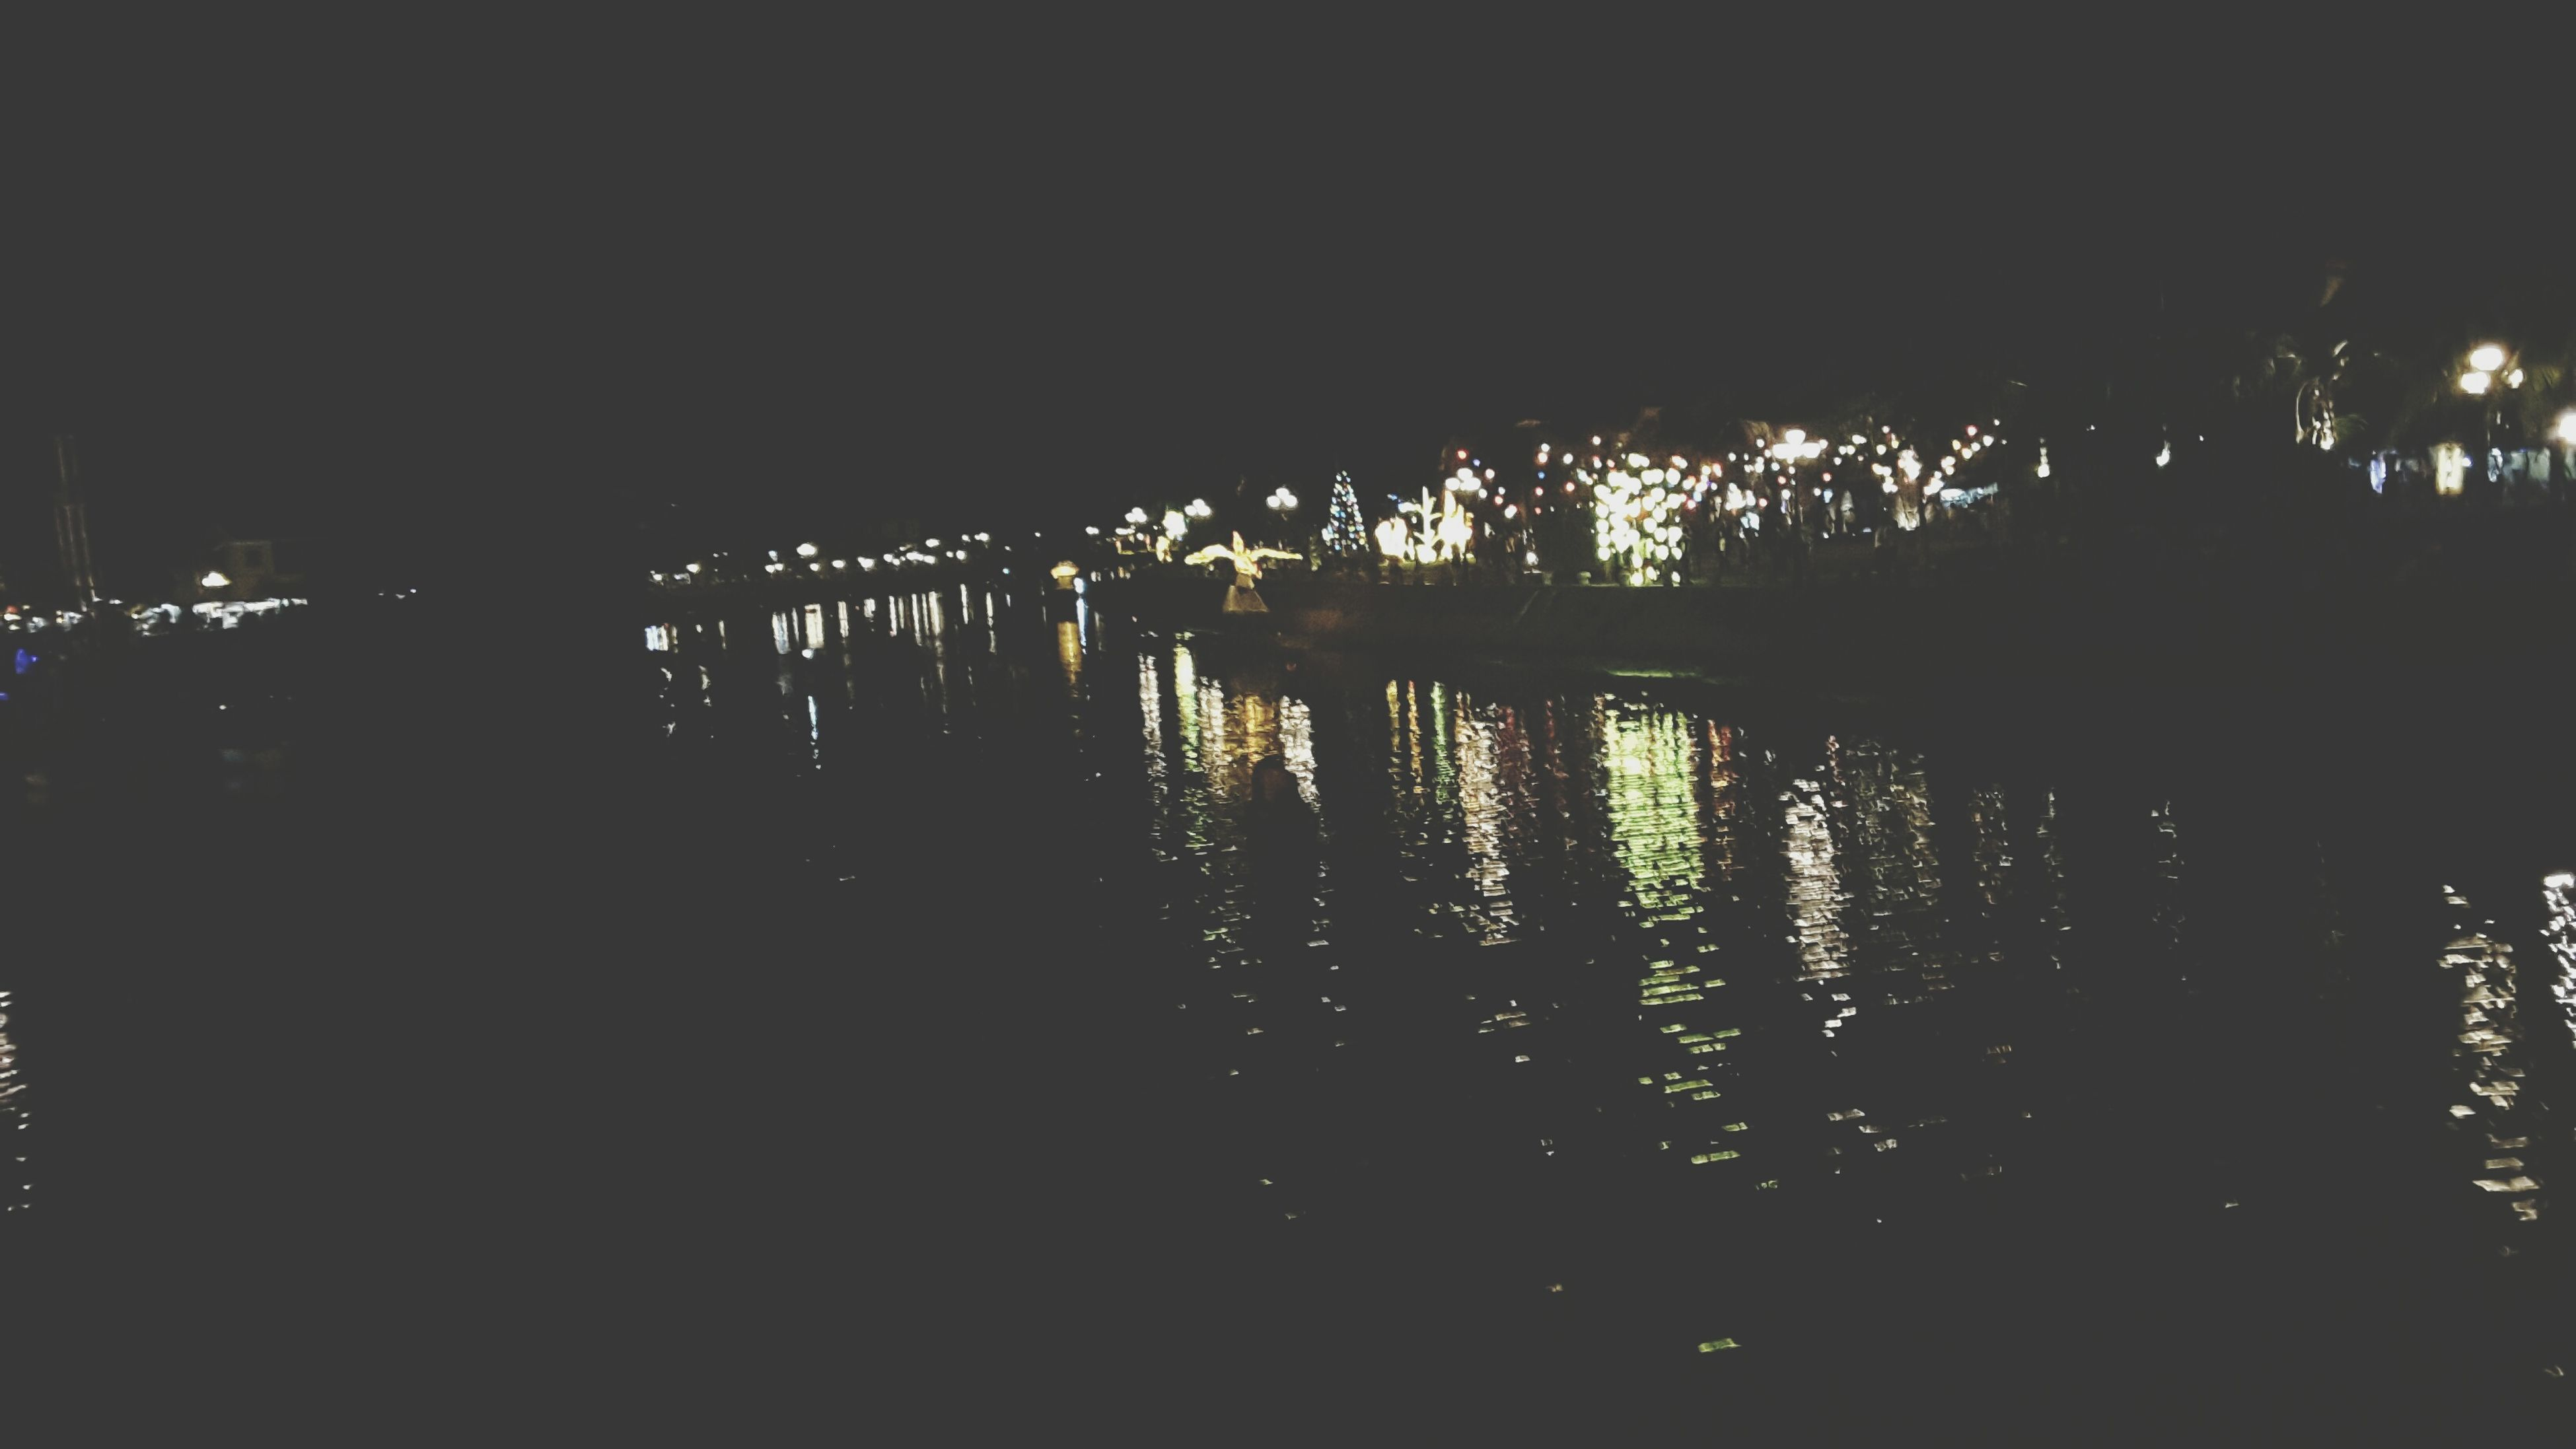 night, reflection, dark, water, illuminated, silhouette, no people, outdoors, nature, beauty in nature